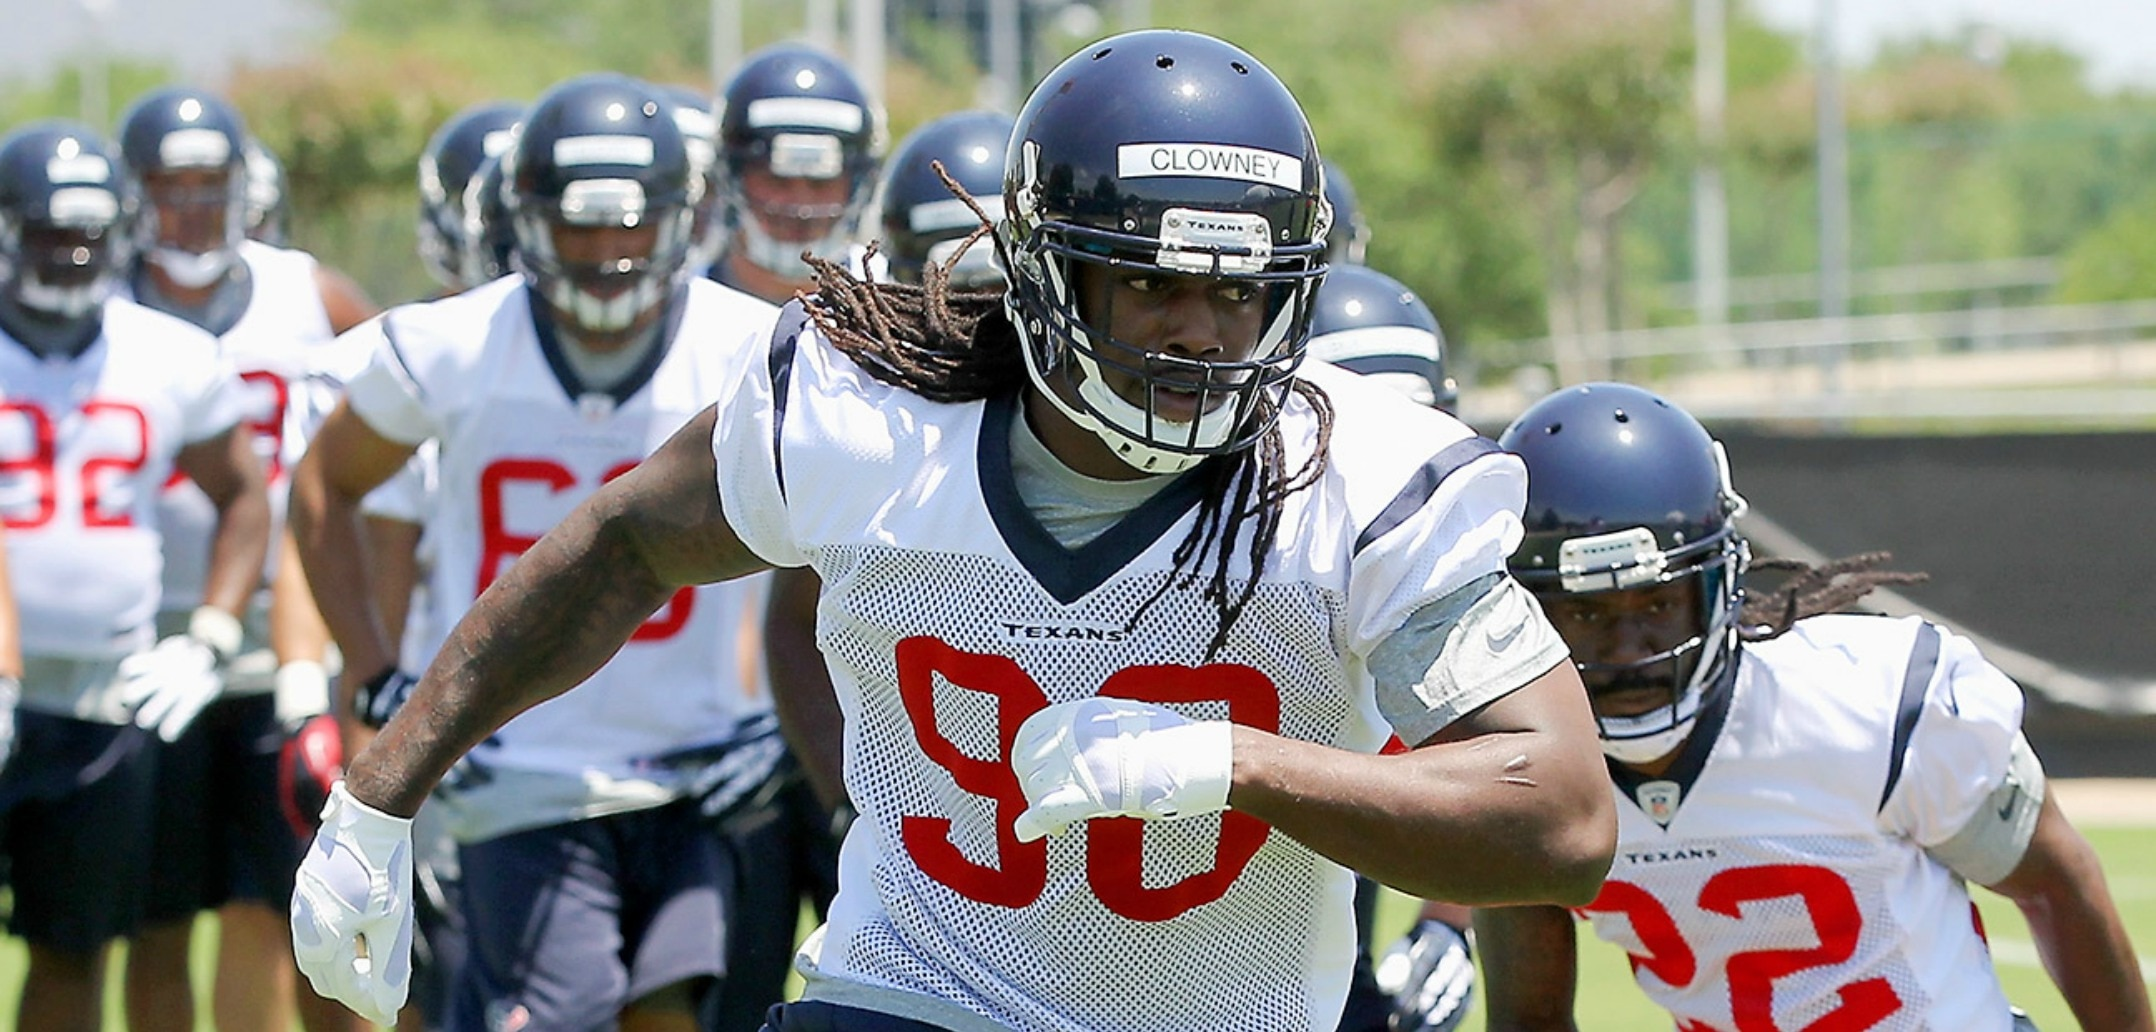 Courtesy of ESPN: Will Clowney have a major impact in 2014?